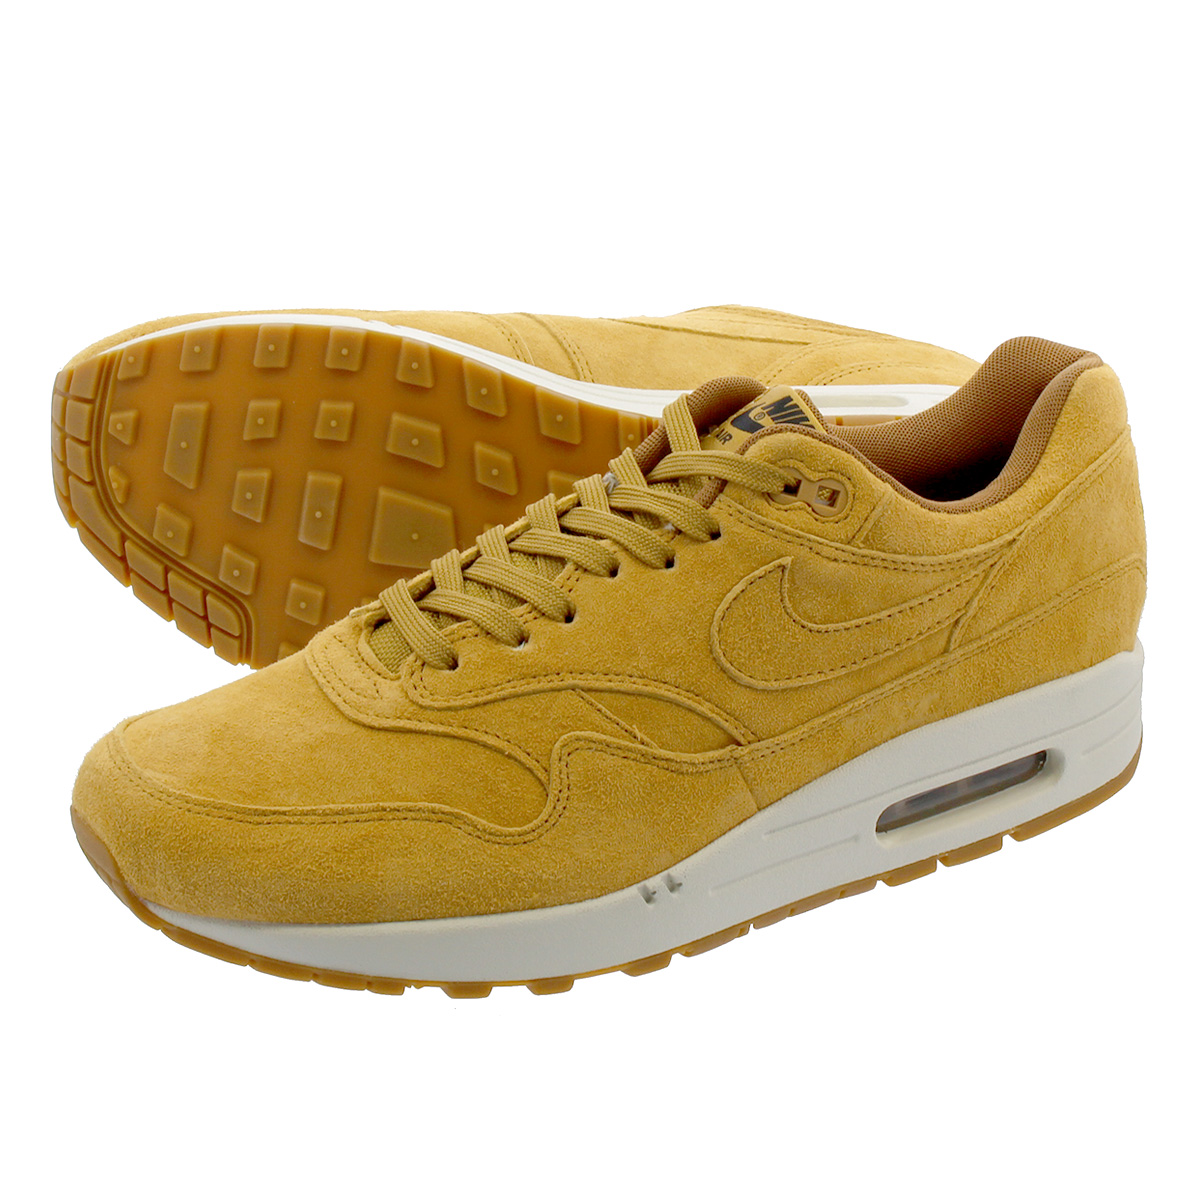 NIKE AIR MAX 1 PREMIUM 【WHEAT】 ナイキ エア マックス 1 プレミアム FLAX/FLAX/SAIL/GUM MED BROWN 875844-701